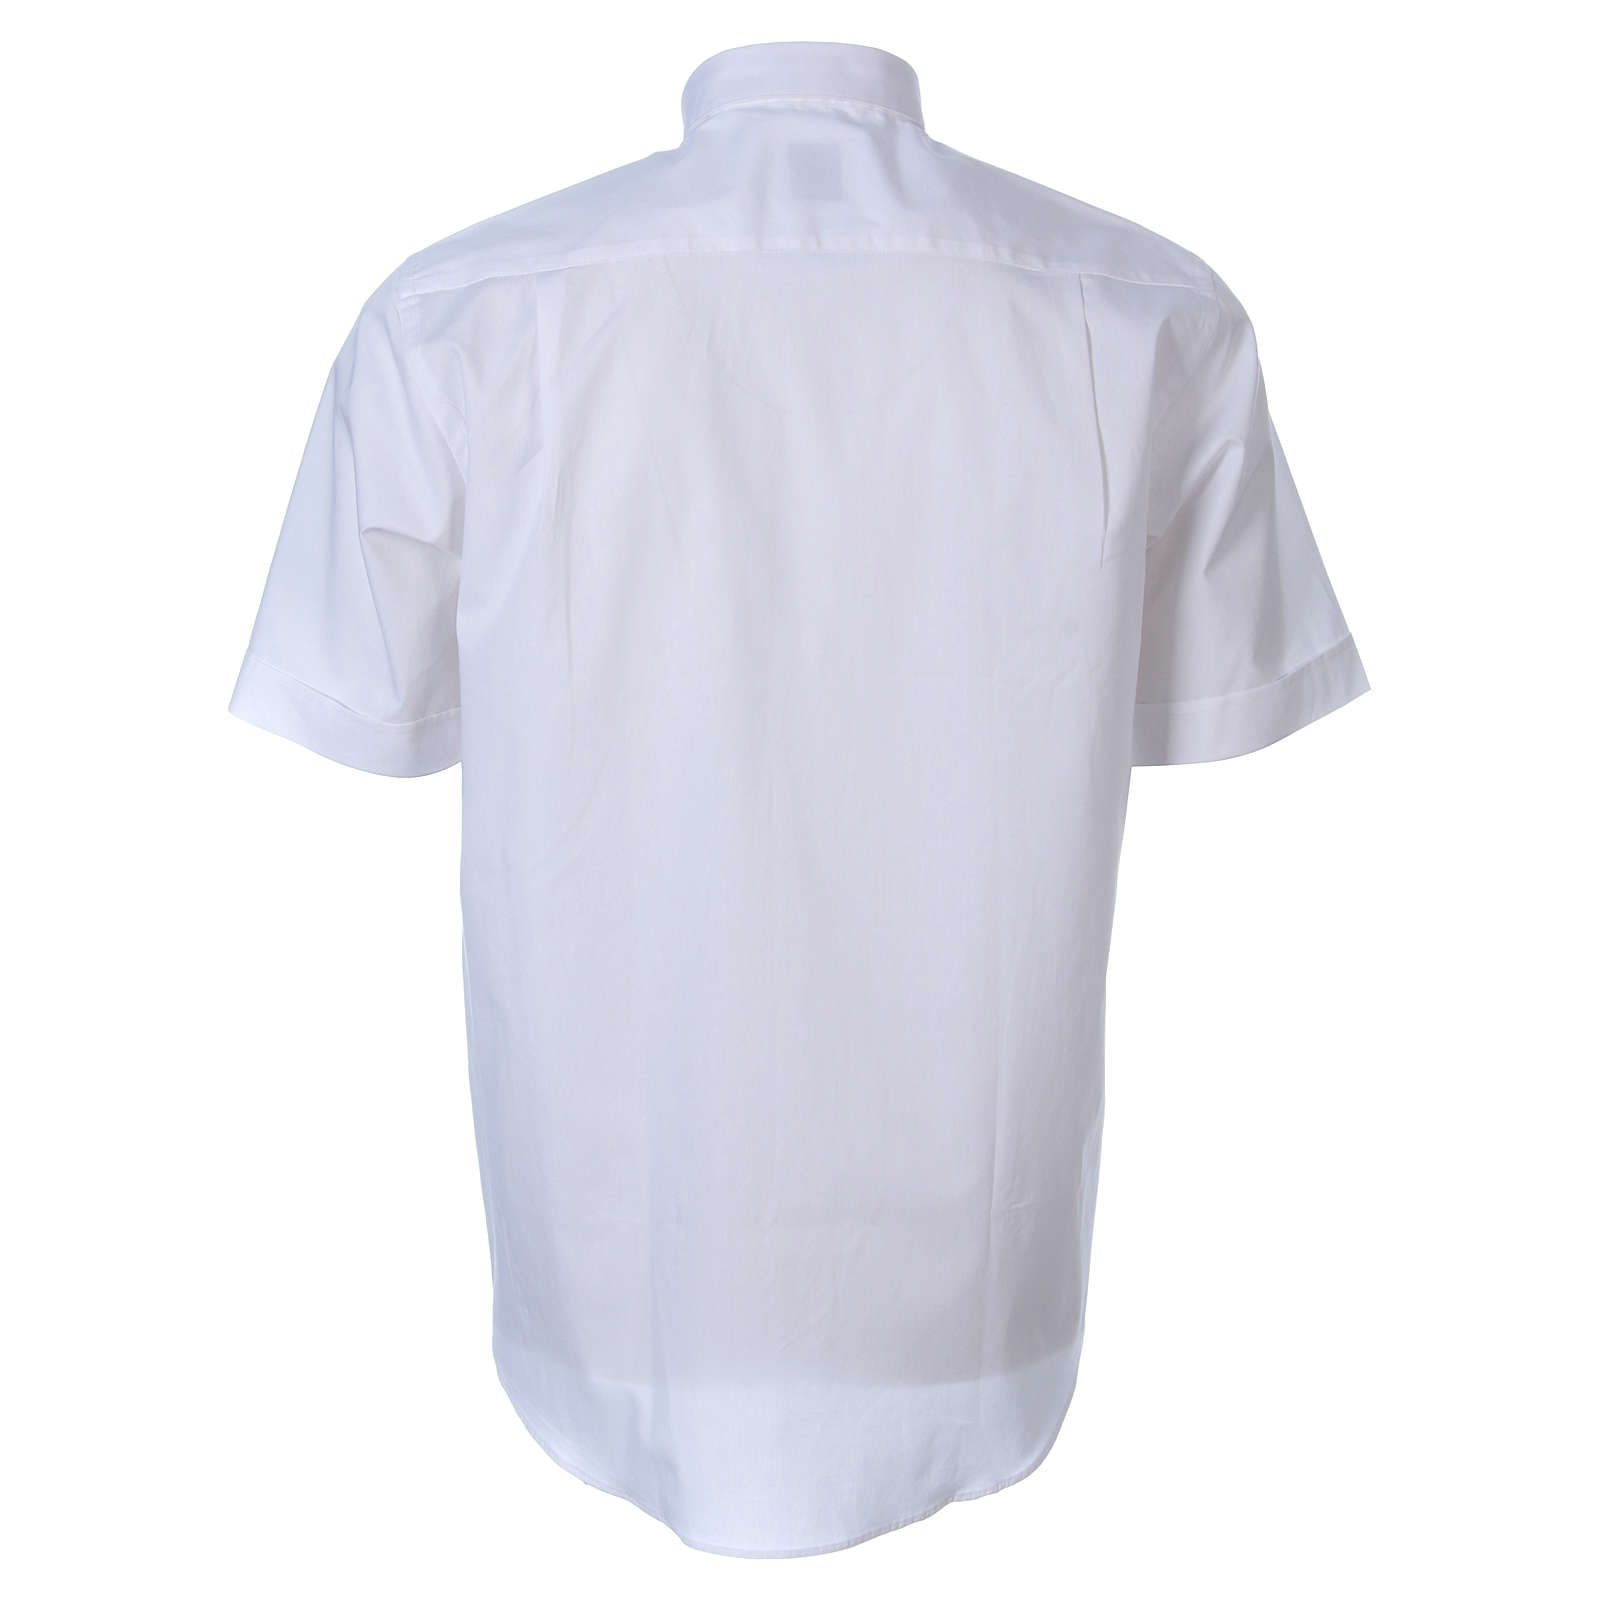 STOCK Camisa manga corta color blanco popelina 4